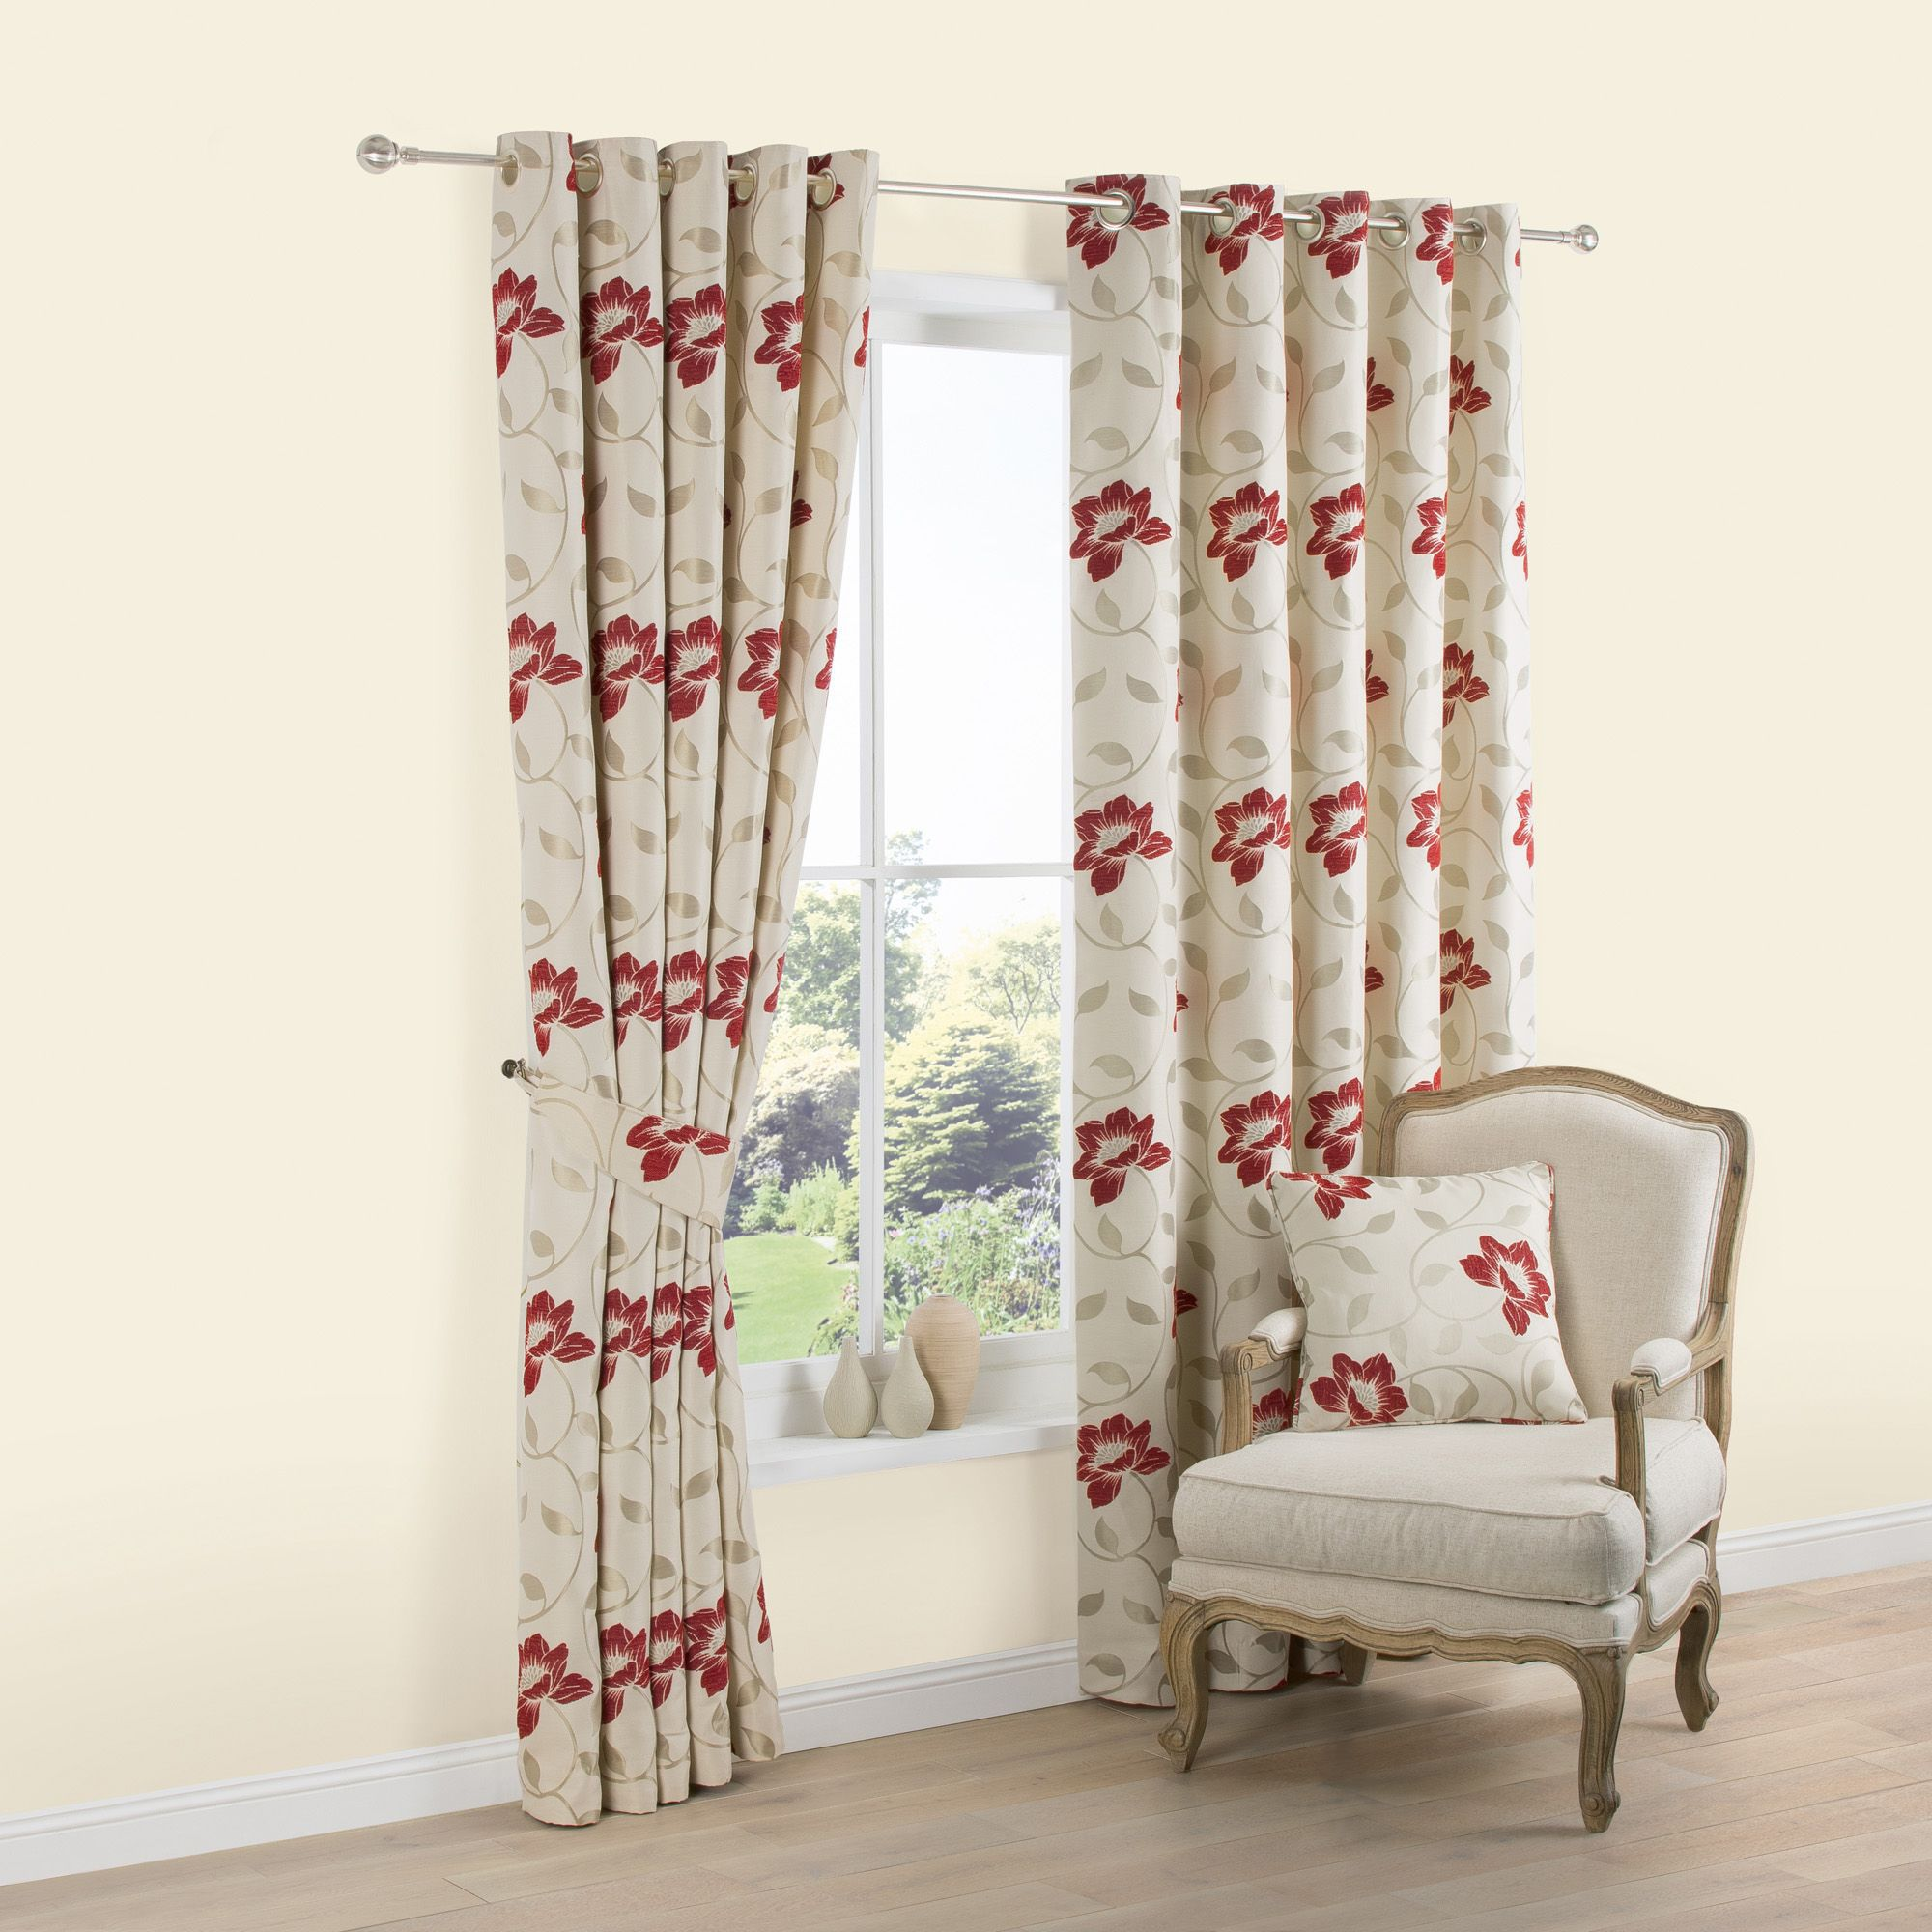 Red and cream window curtains - Geranium Cream Red Floral Jacquard Woven Eyelet Lined Curtains W 228 Cm L 228 Cm Departments Diy At B Q